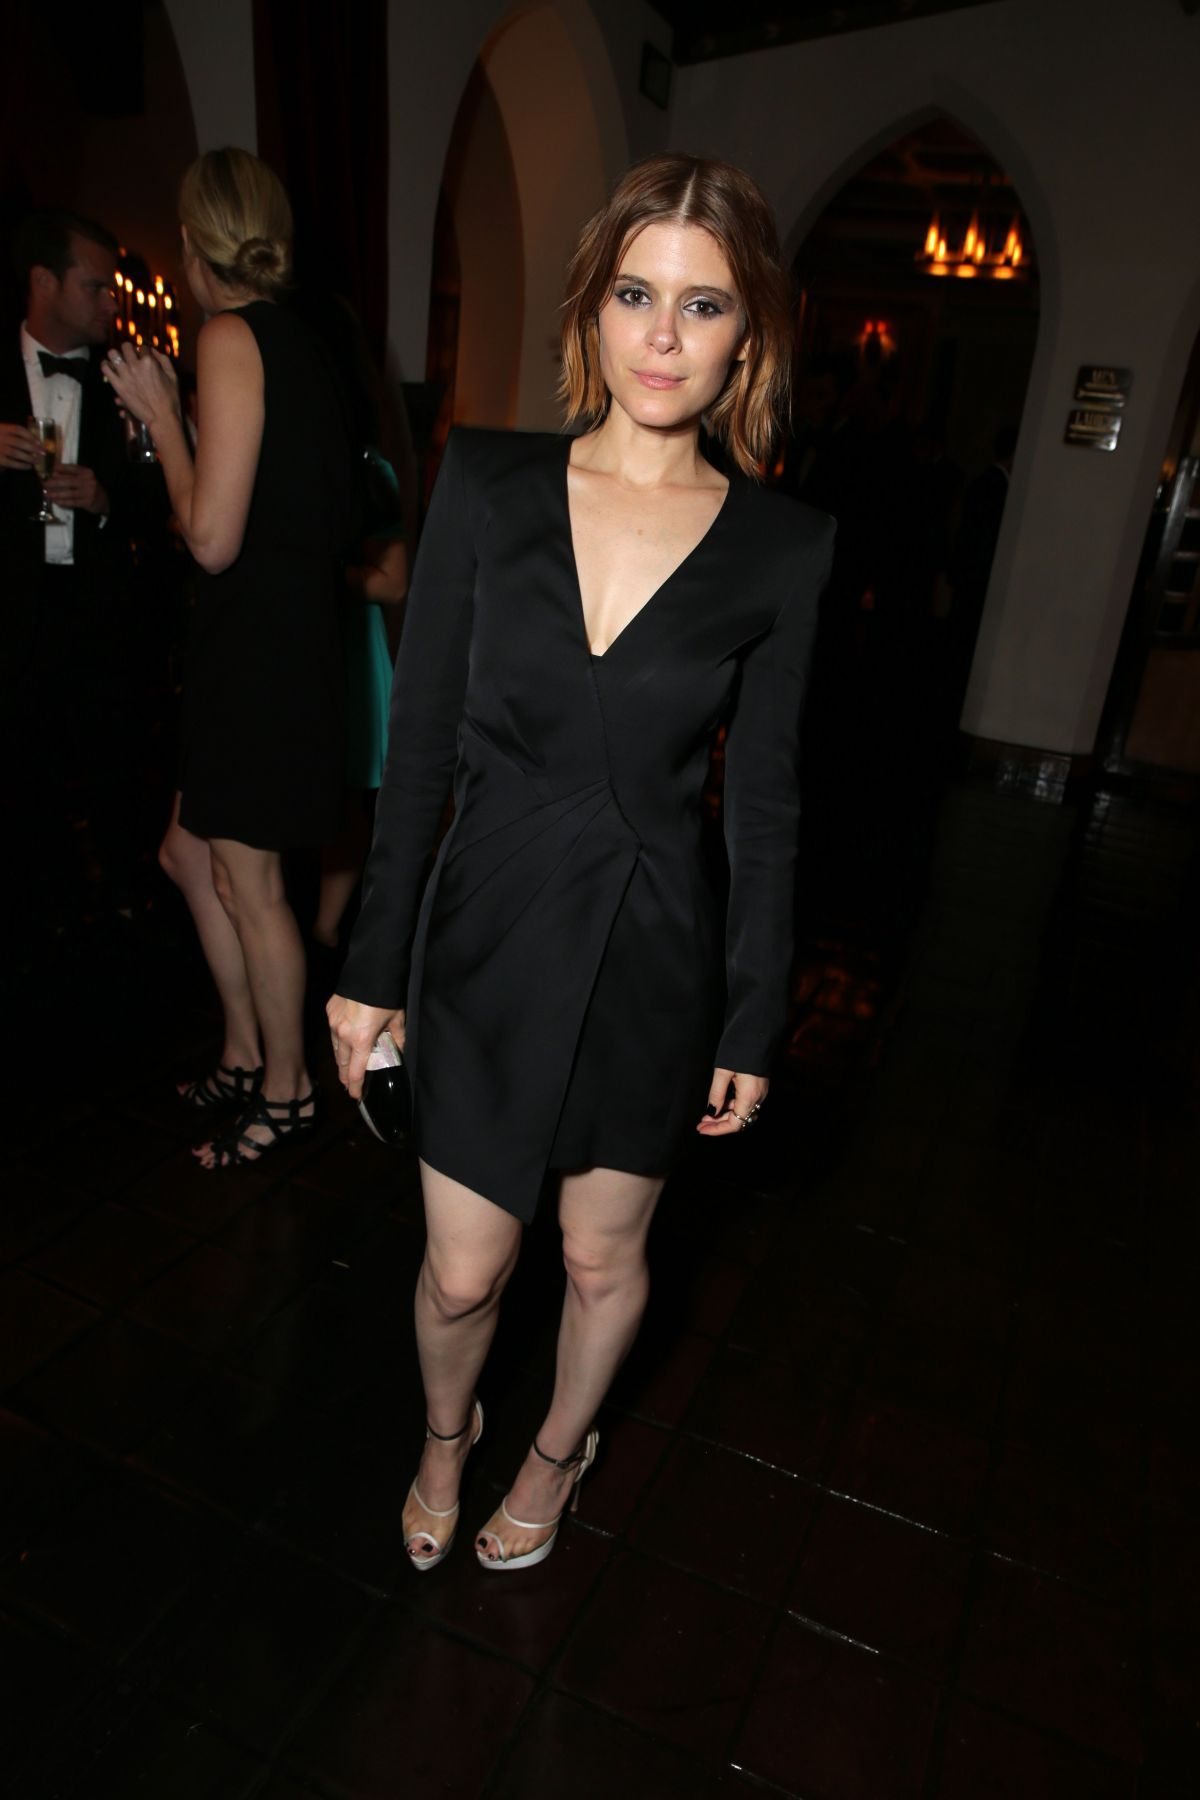 KATE MARA at Netflix Emmy After Party